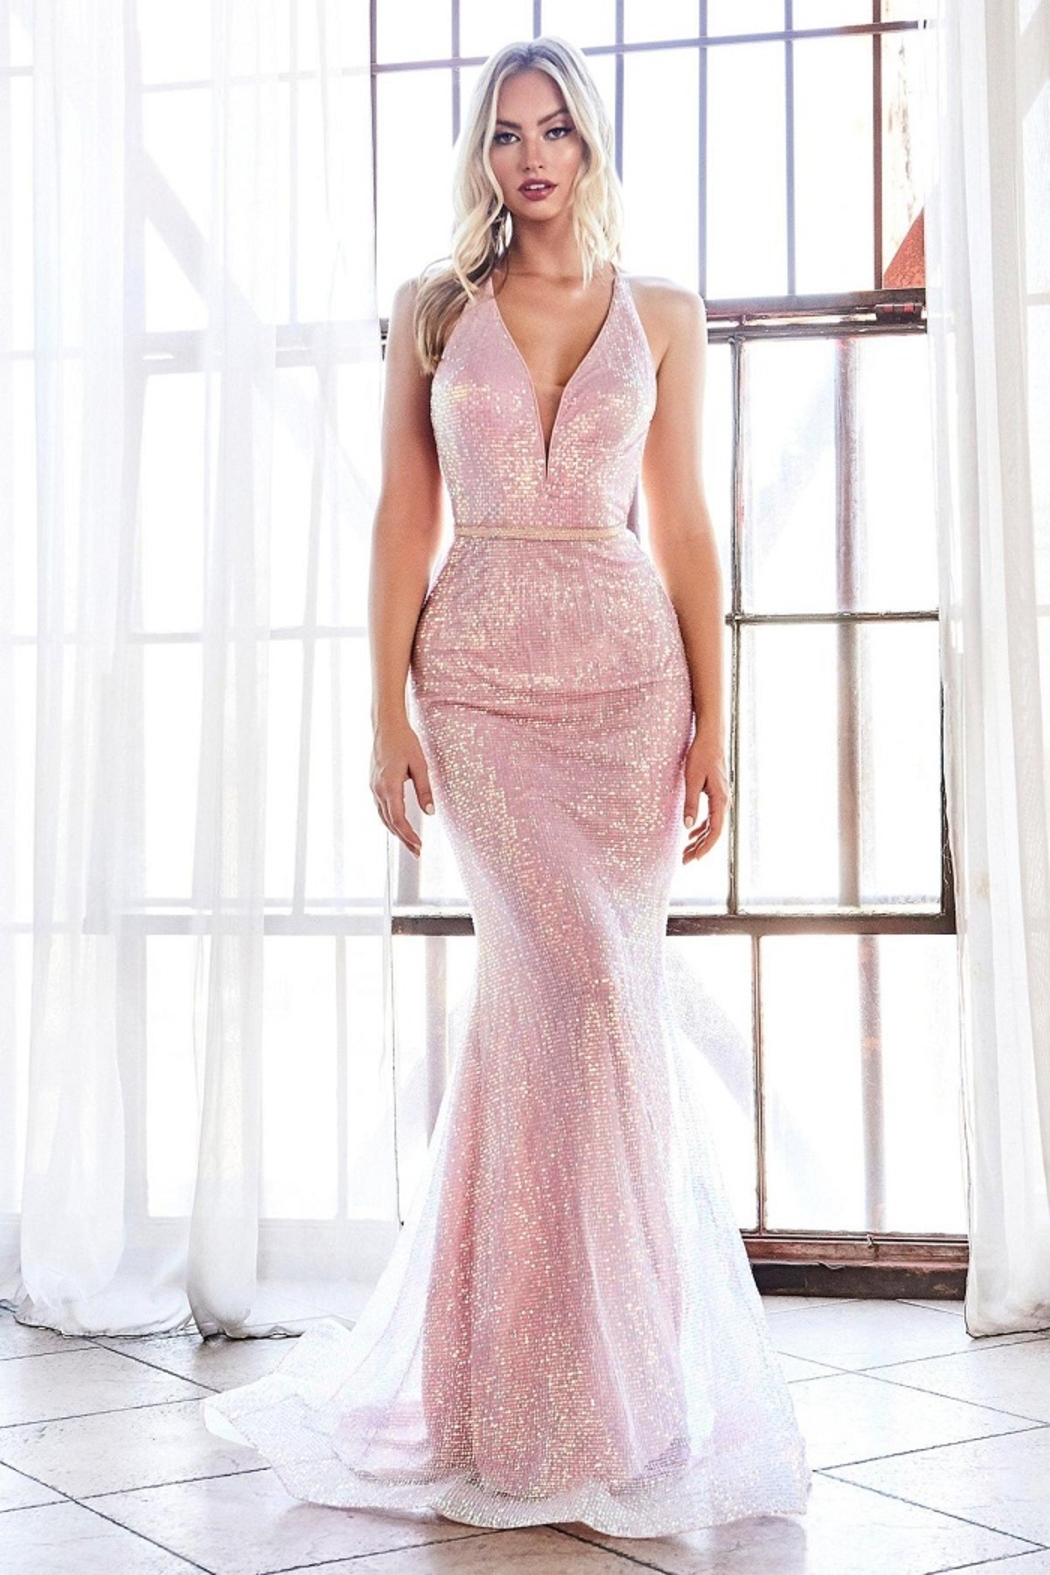 Cinderella Divine Opal Blush Sequin Fit & Flare Long Formal Dress - Main Image